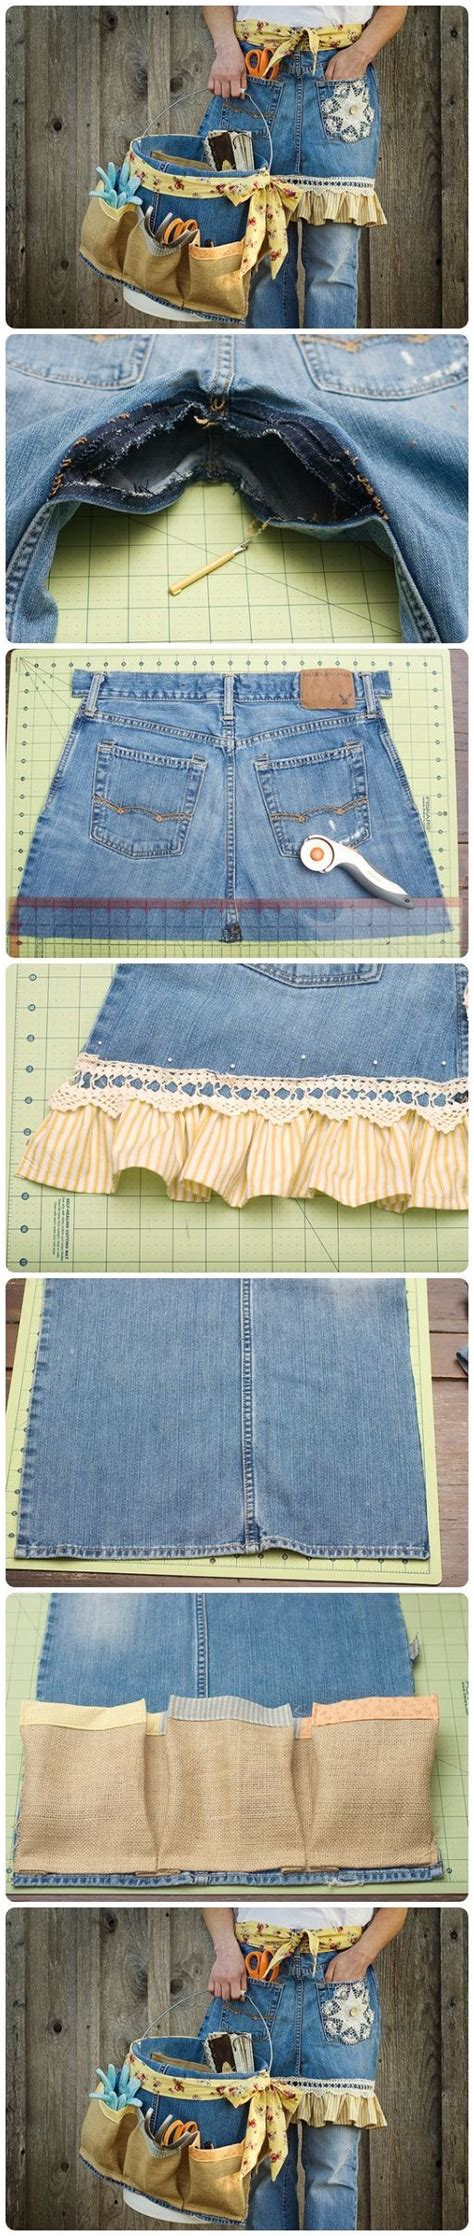 apron pattern using old jeans diy denim apron and basket from old jeans woman clothing